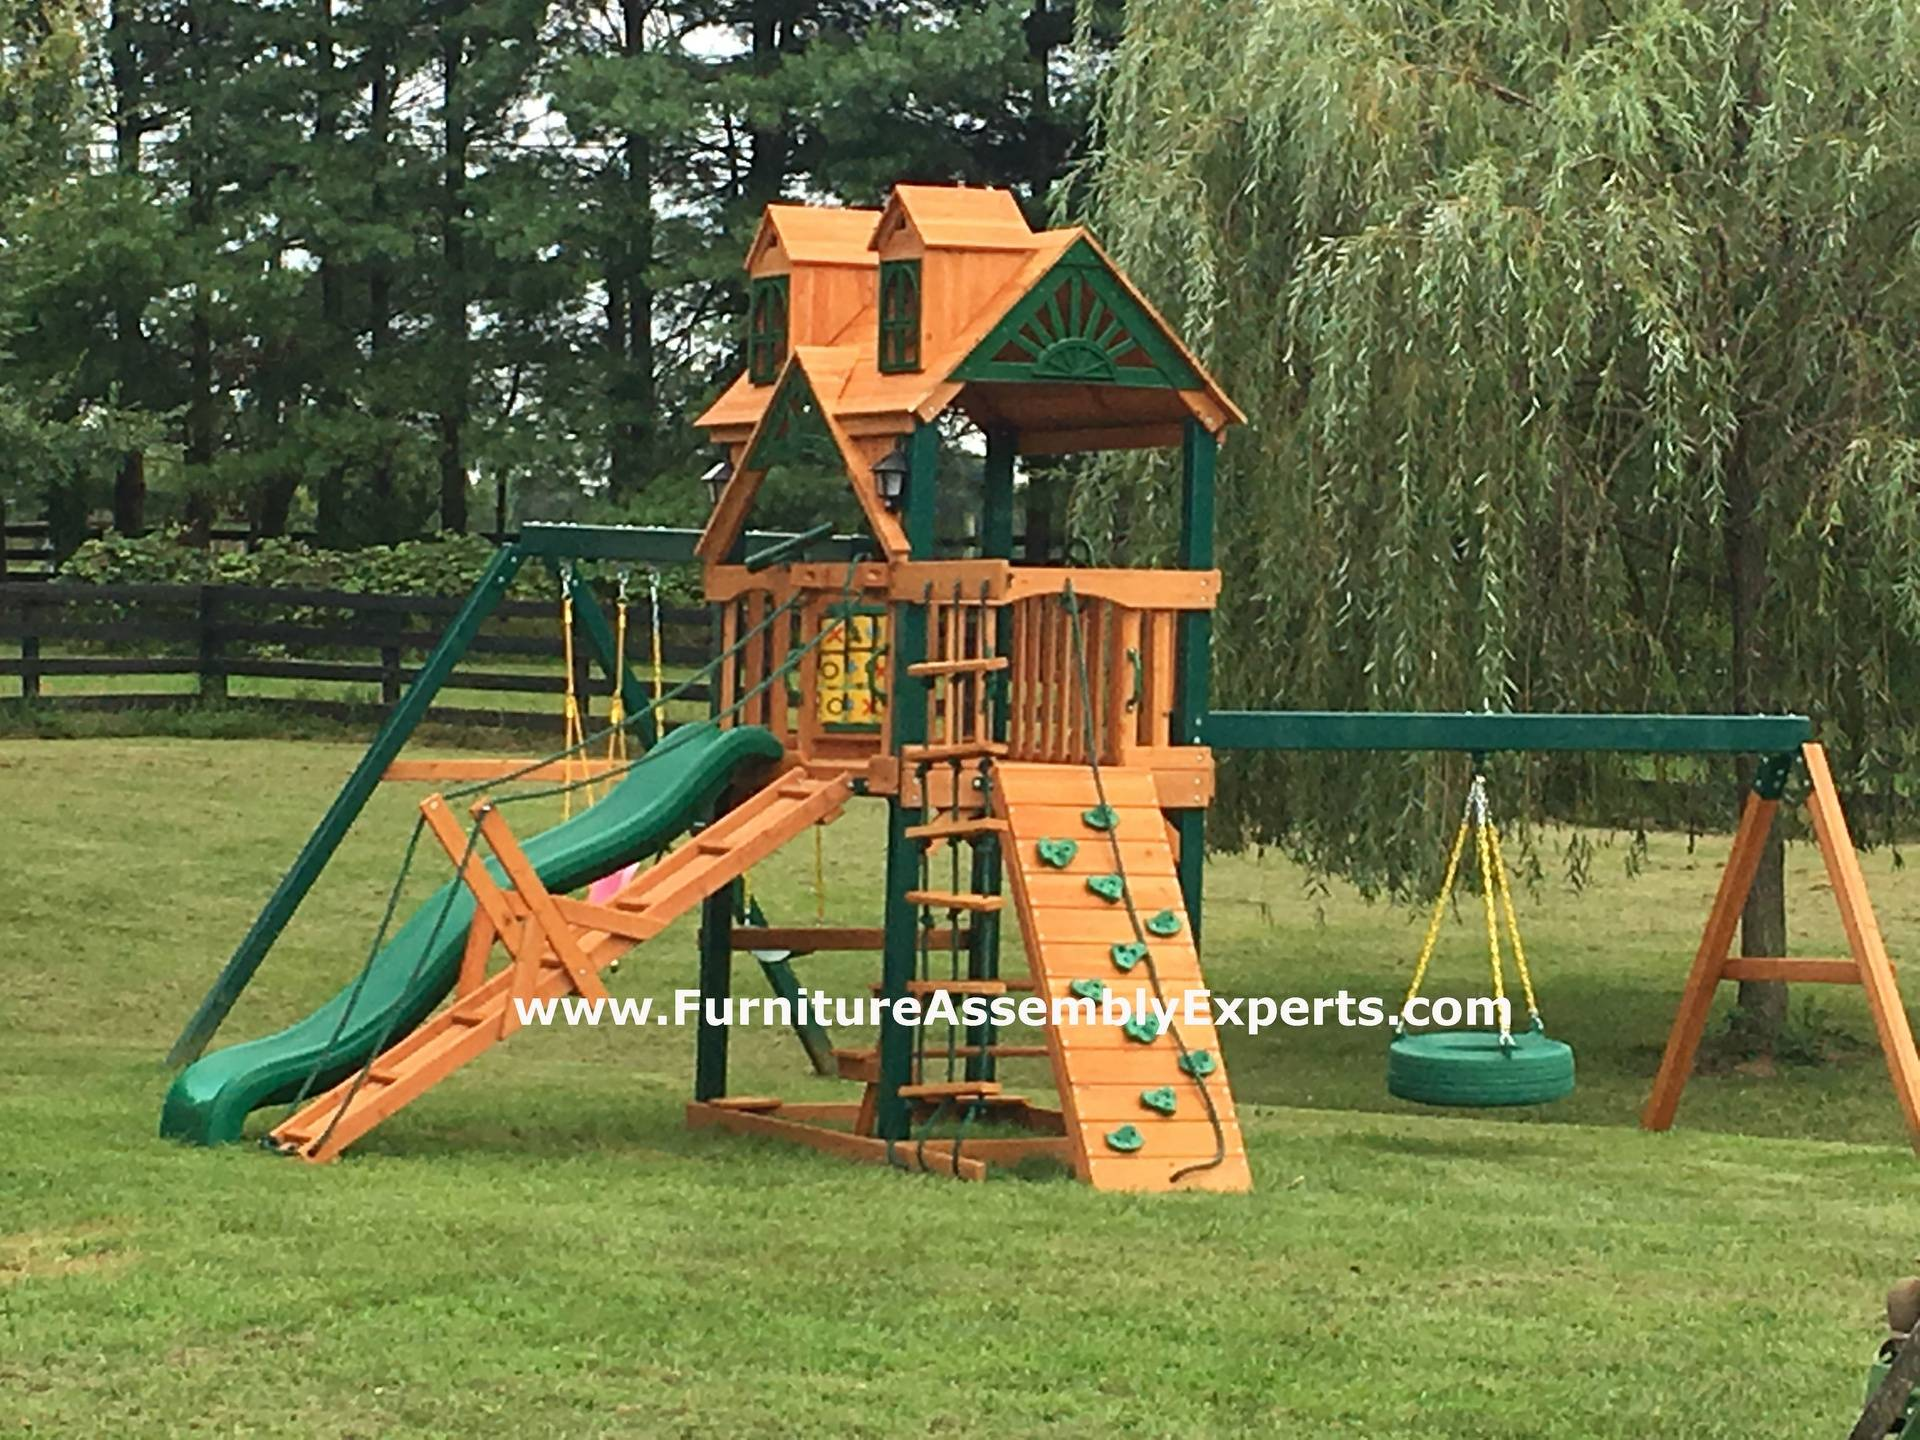 Gorilla frontier cedar swing set installation in DC MD VA